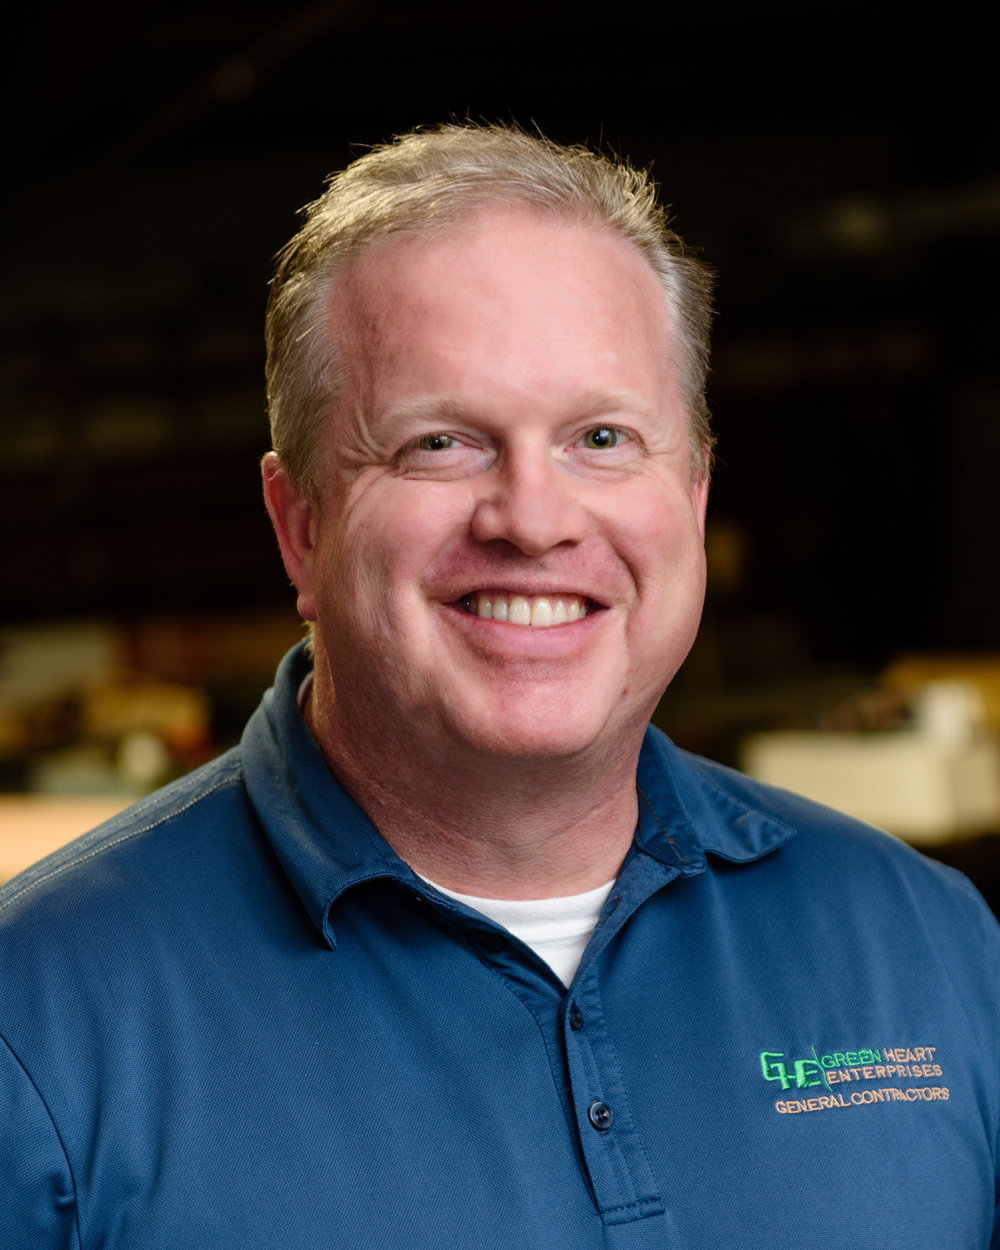 Kevin Doerr, Project Manager   Kevin has over 18 years of commercial estimating, coordination, and management experience.